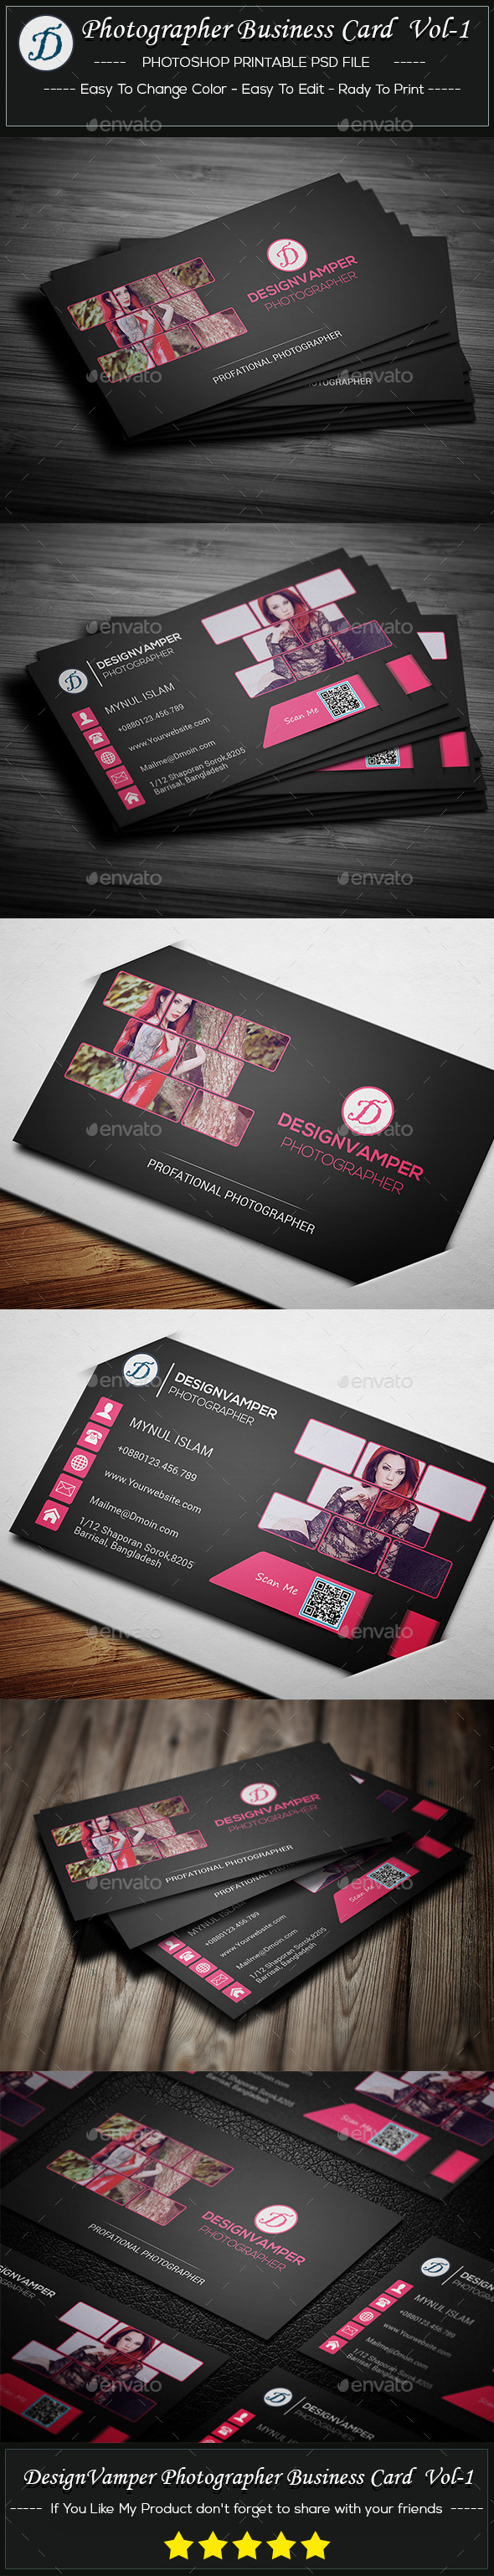 Photographer Business Card Vol-1 - Creative Business Cards